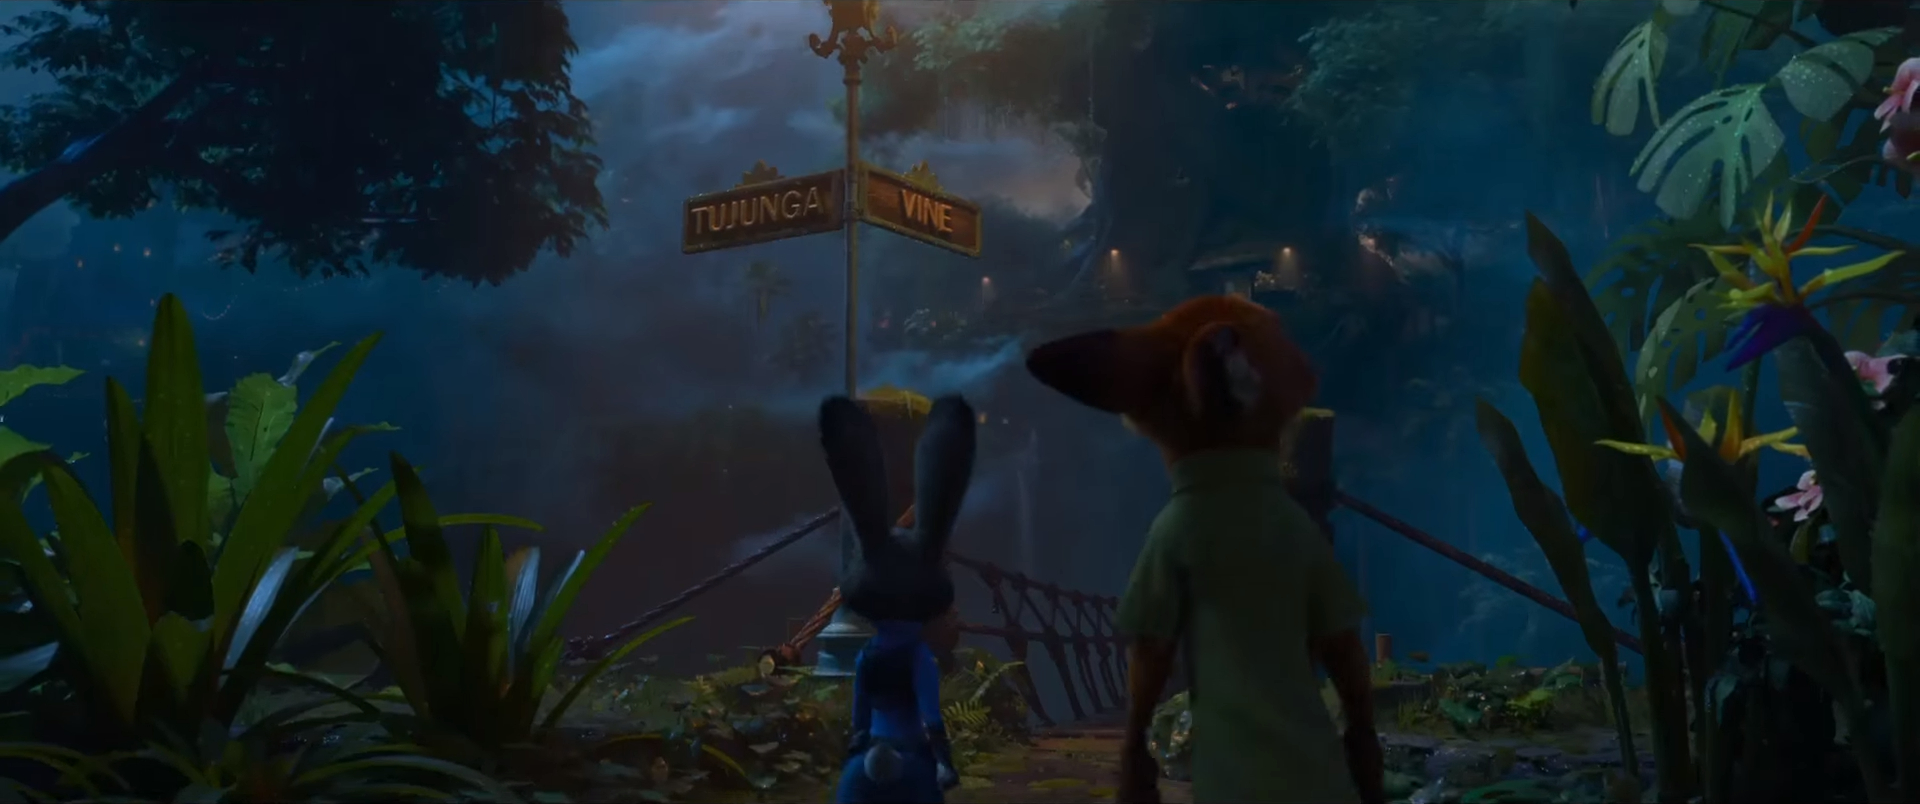 Zootopia easter egg Tujunga and Vine